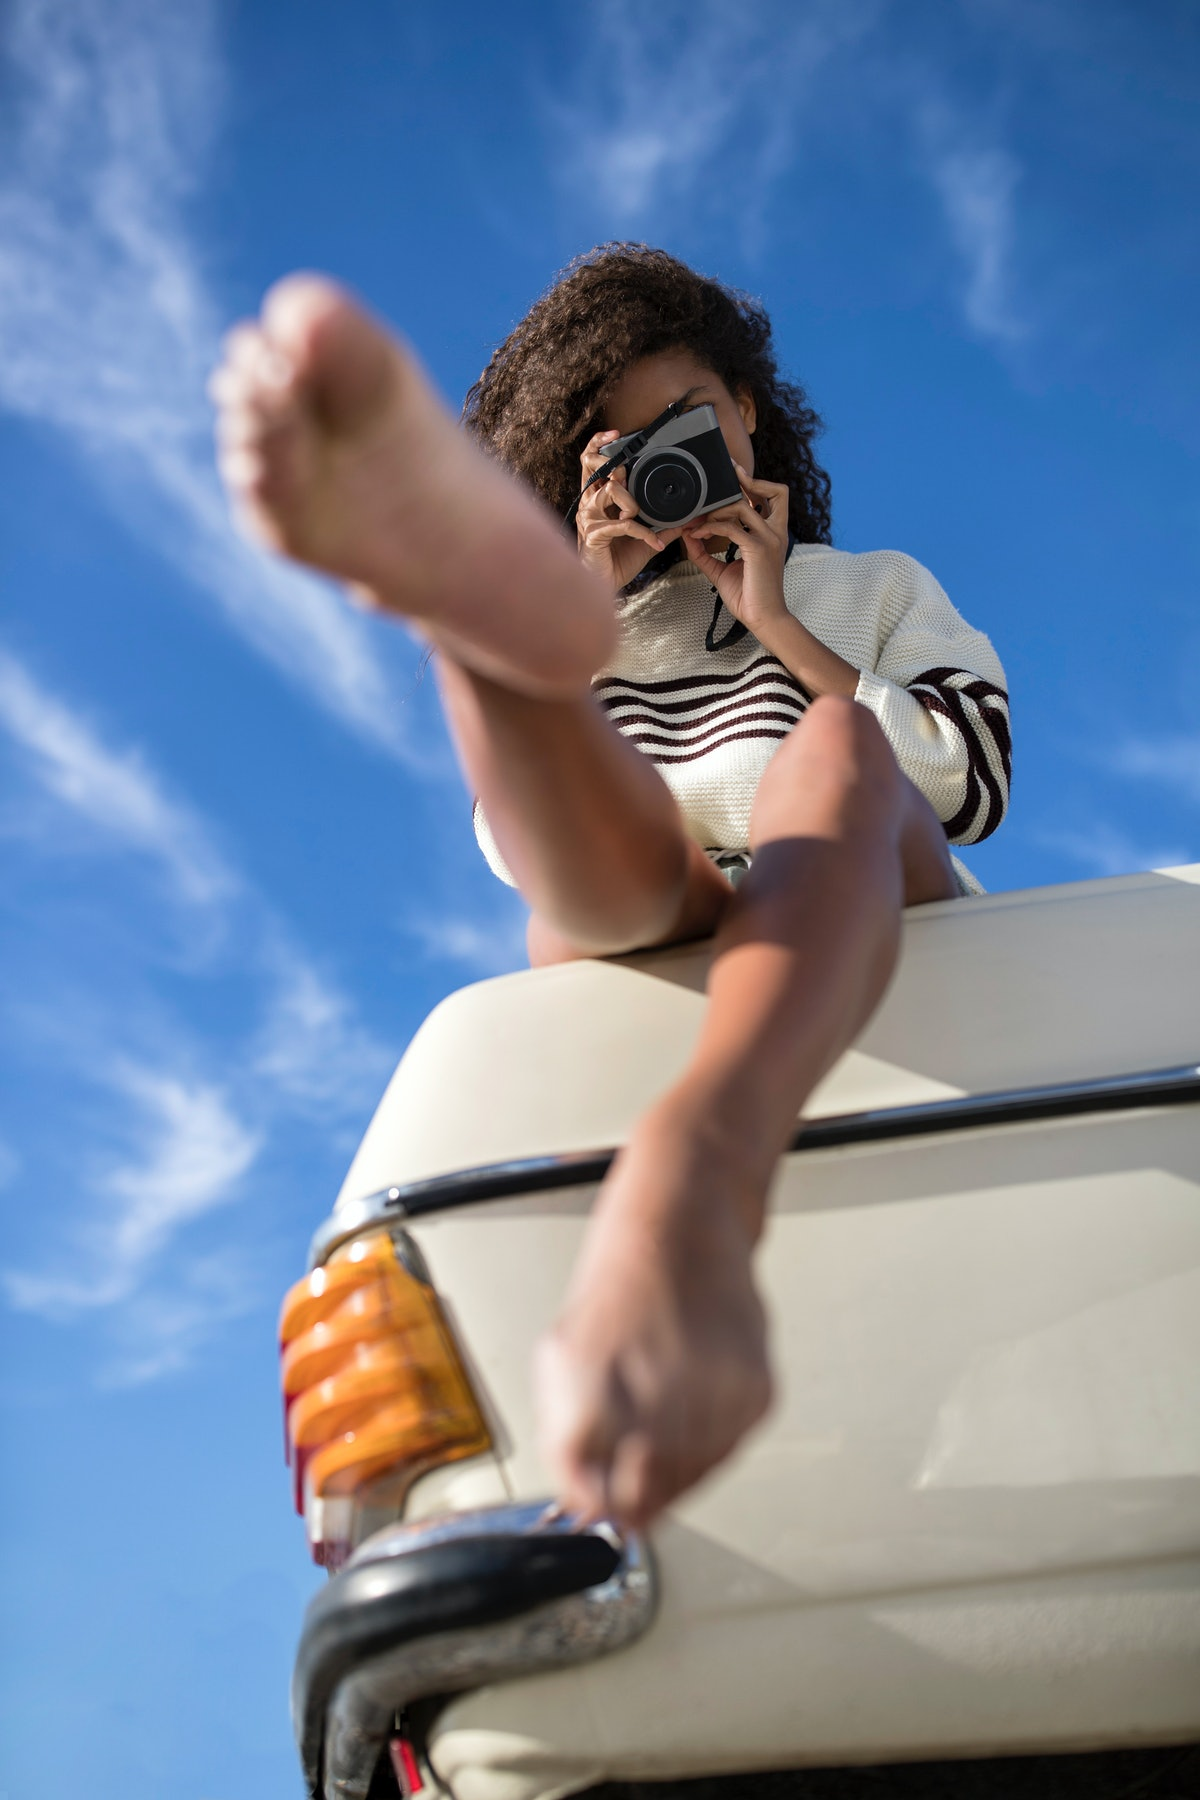 A young Black woman sits on the trunk of a vintage car and takes a photo on a vintage camera.